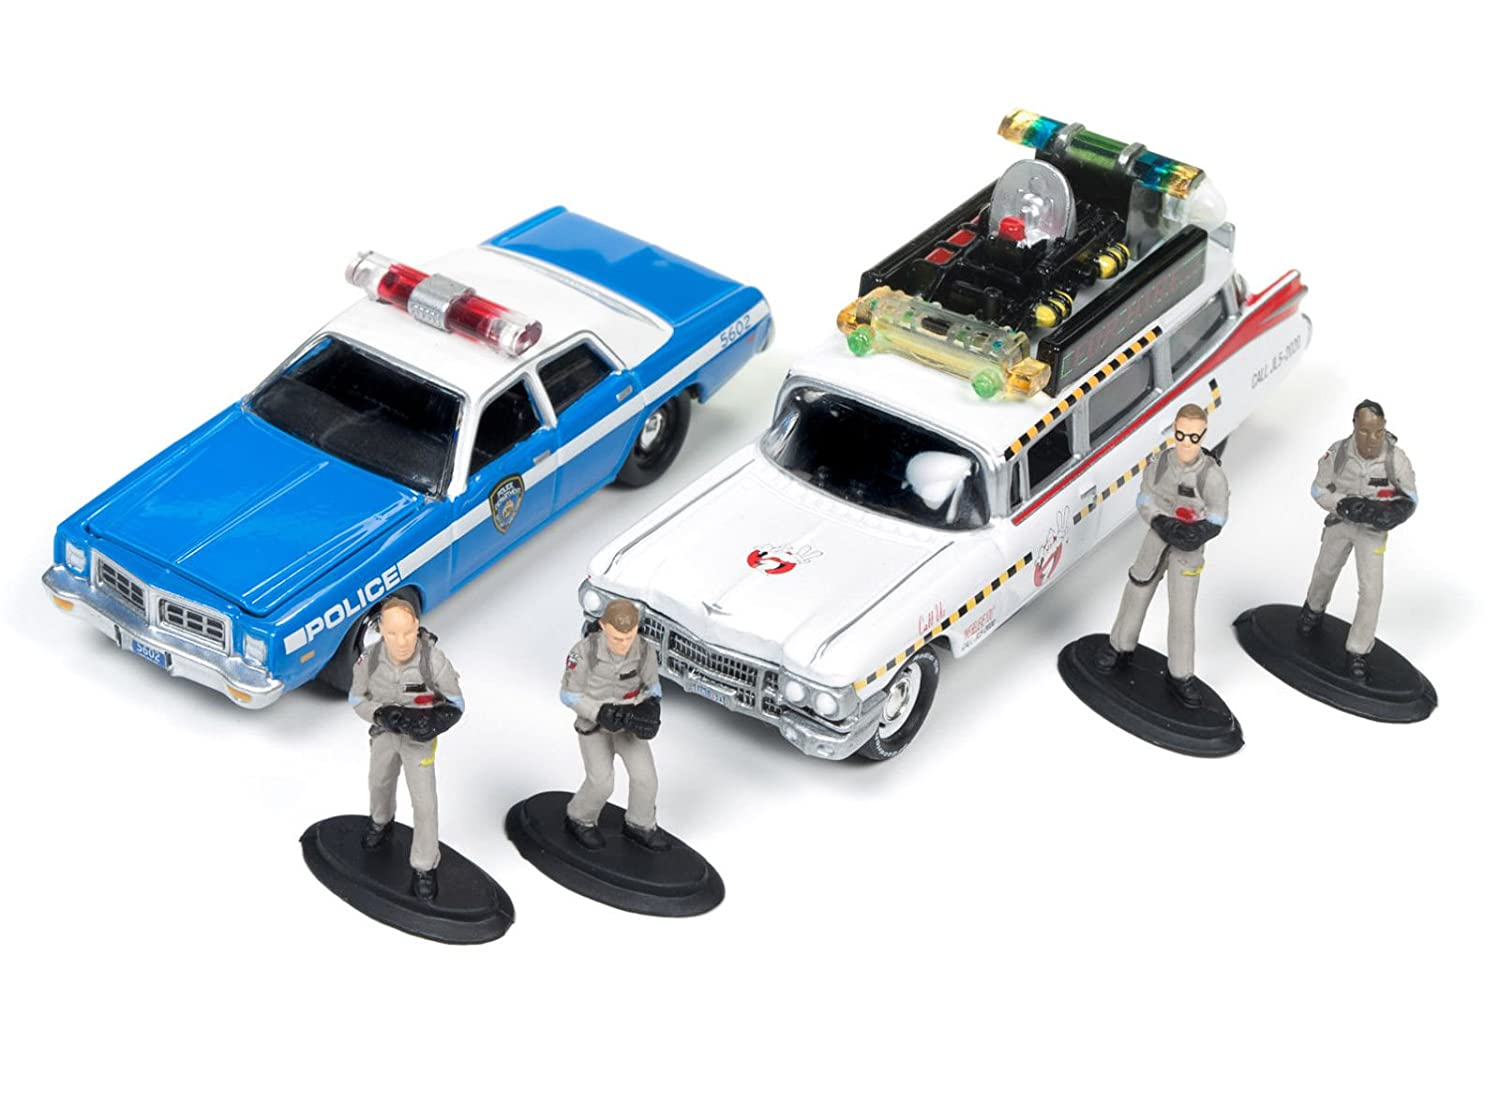 Johnny Lightning JLDR001 GH ECTO 1A 1959 Cadillac Ambulance and 1977 Dodge Monaco New York City Police with Figurines from Ghostbusters 1 Movie 1 64 Diecast Model Cars